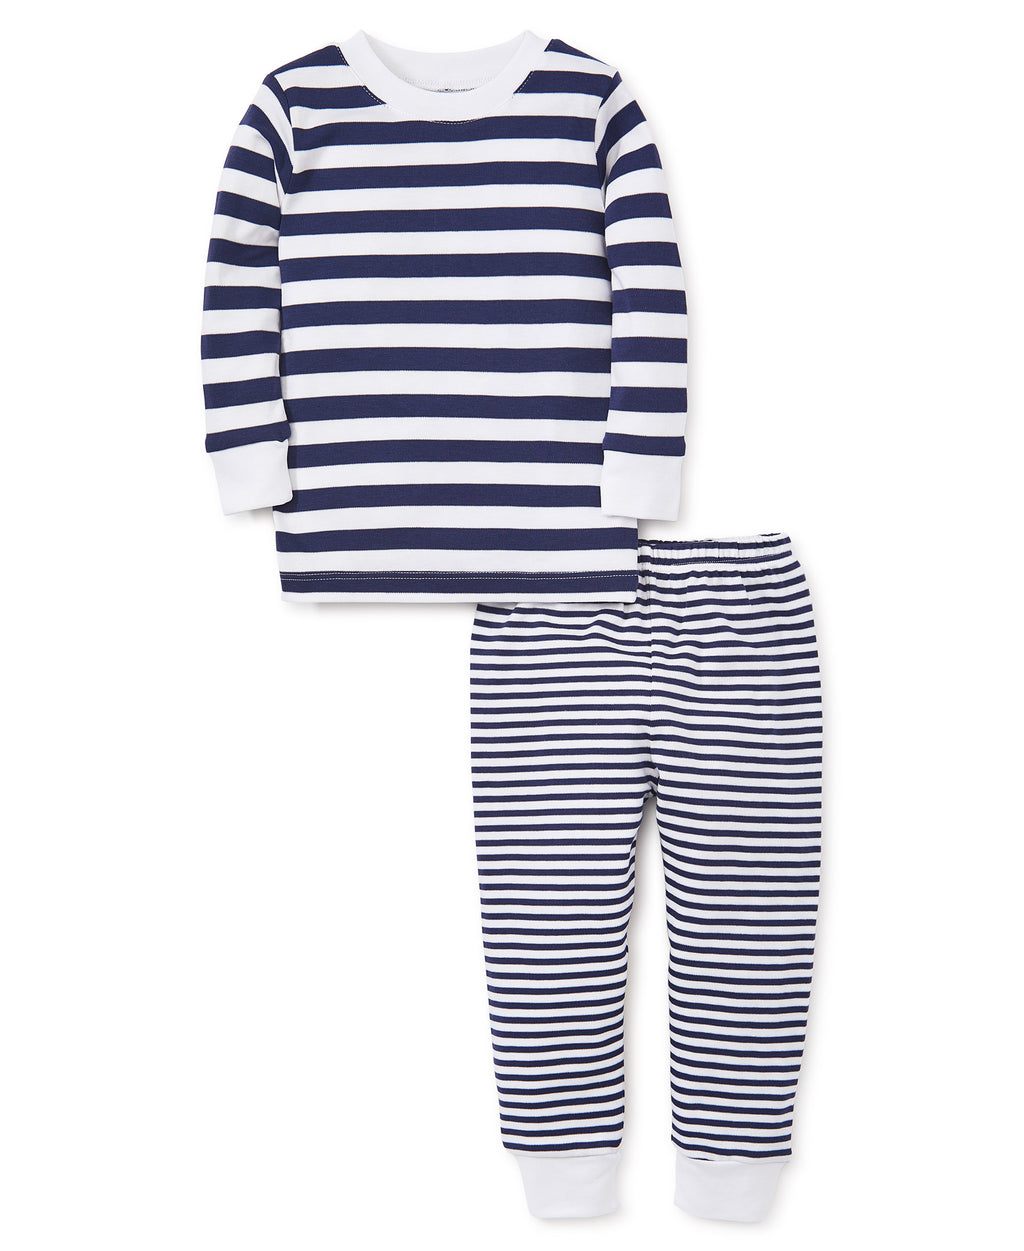 Navy Stripes Pajama Set